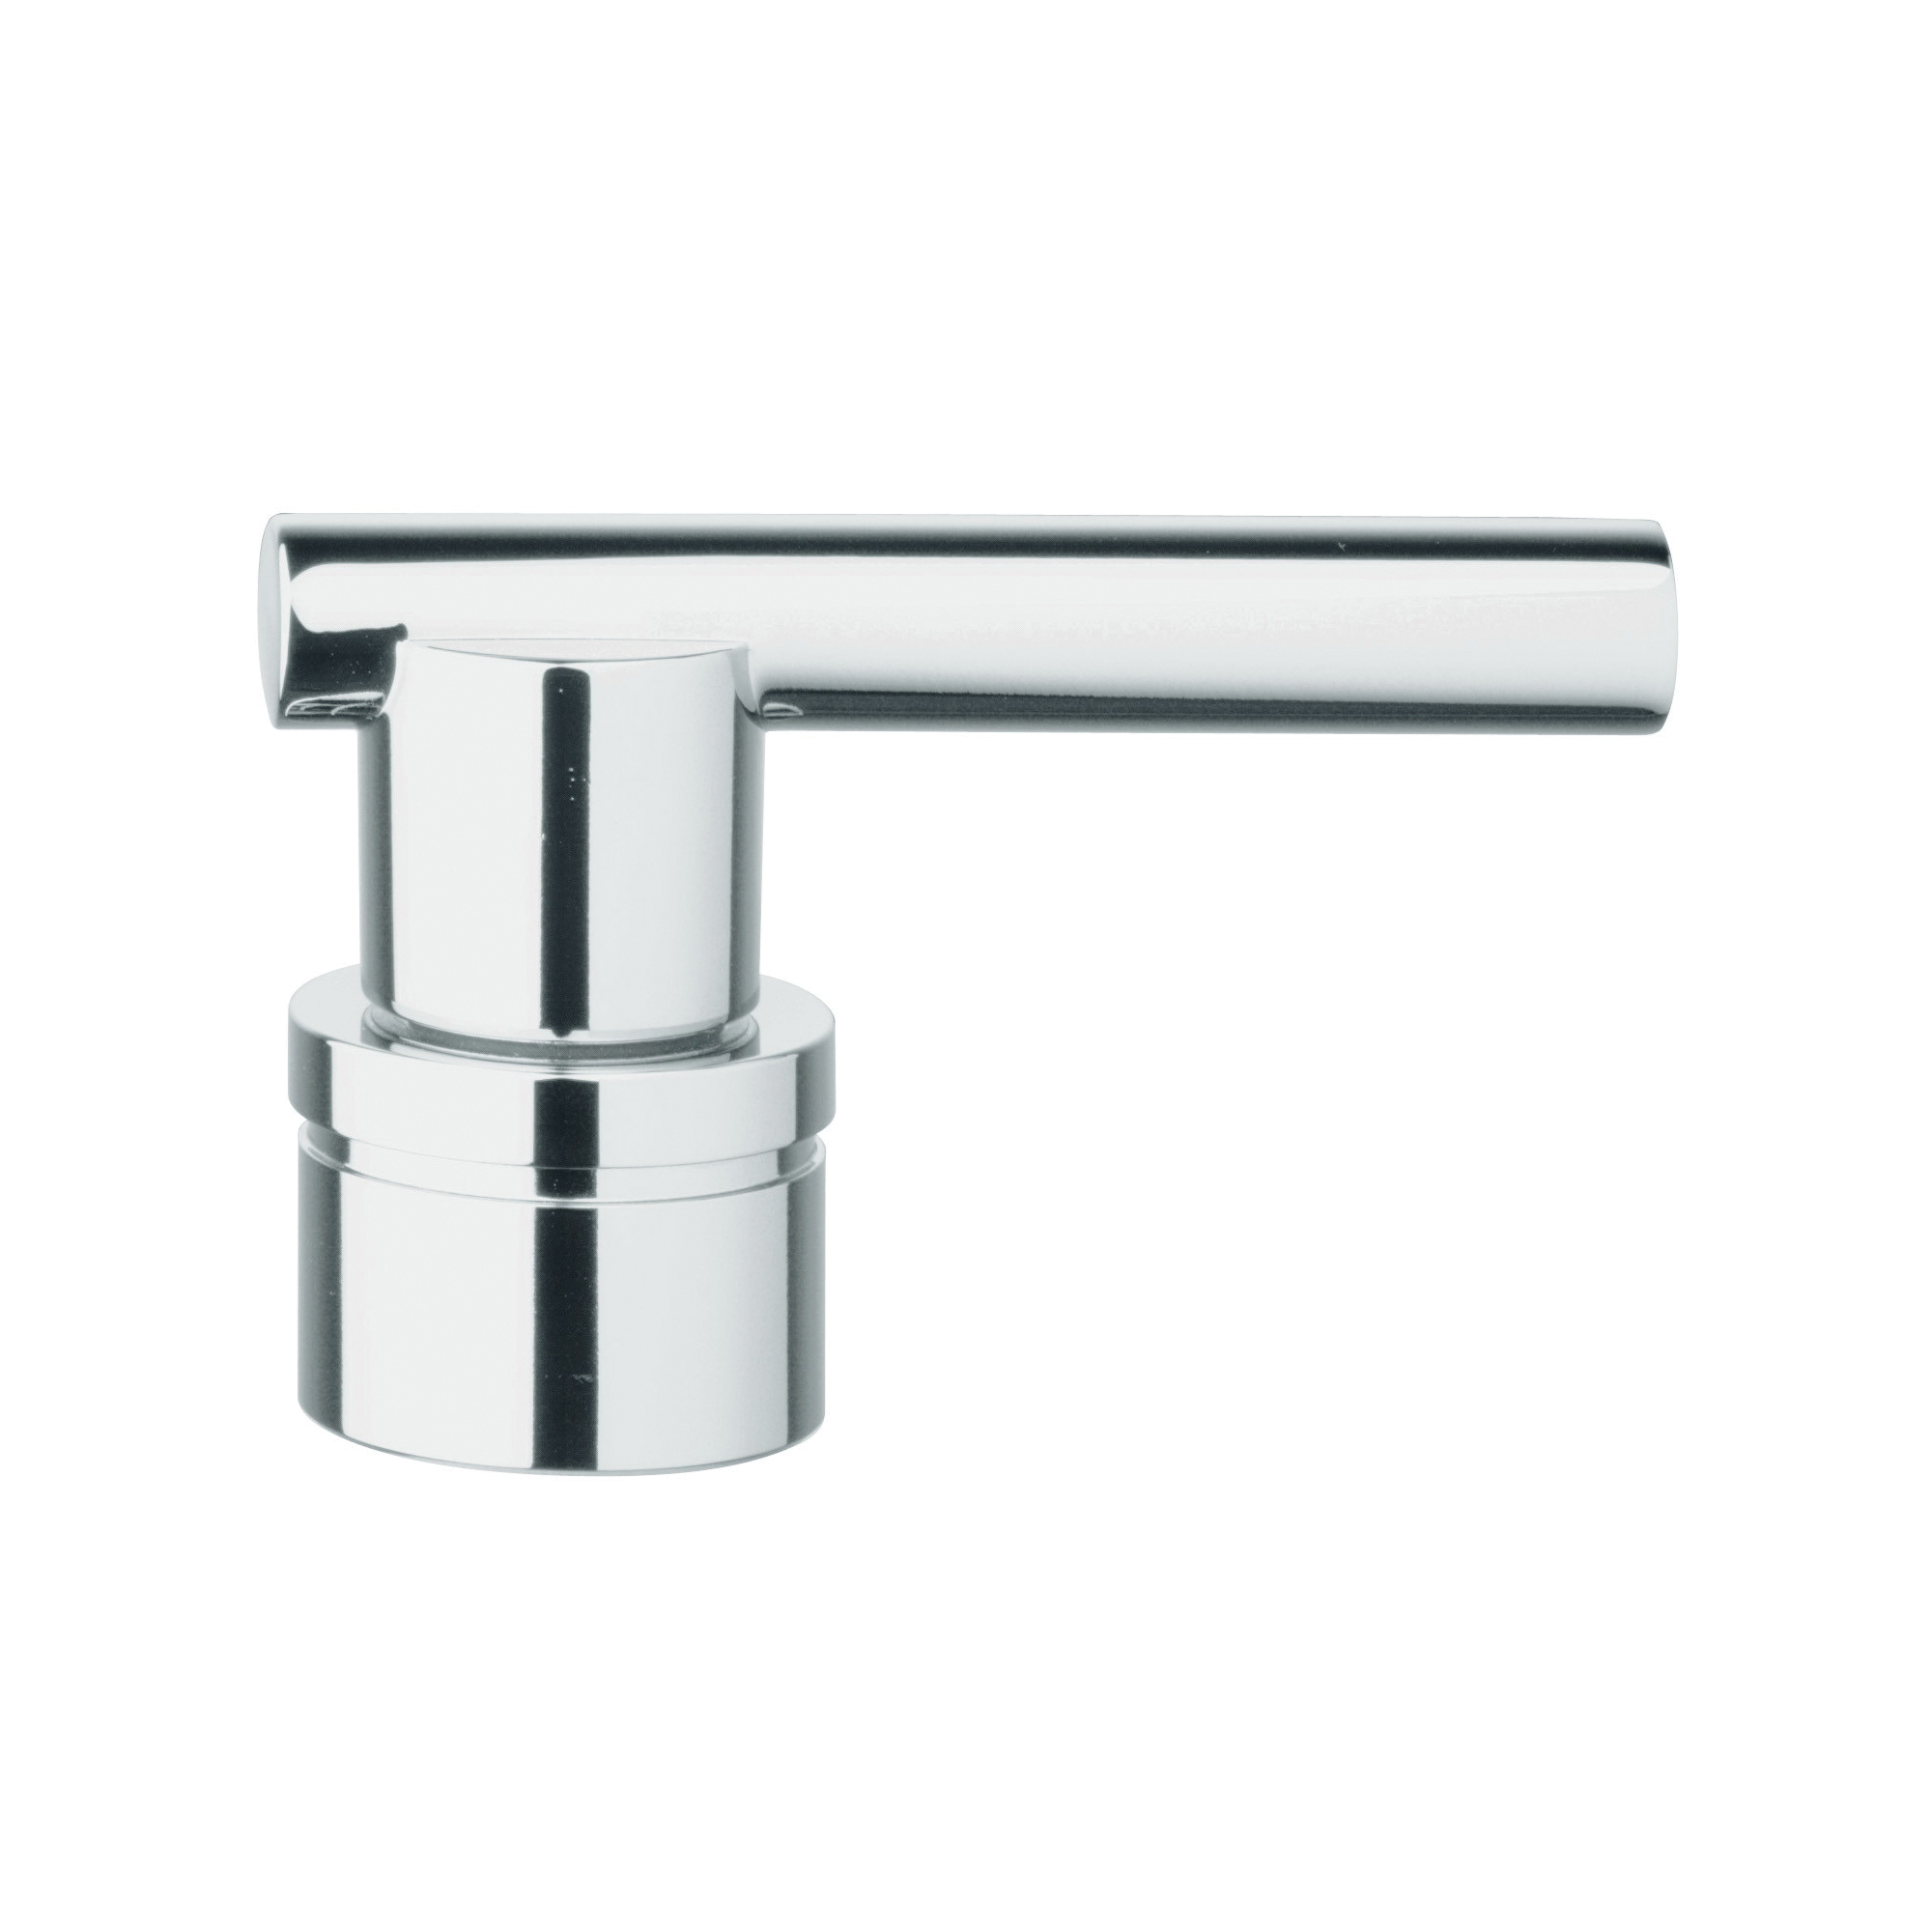 GROHE 45609000 Jota Atrio® Lever Handle With Handle Mounting, For Use With Bathroom Sink, Brass, StarLight® Chrome, Import